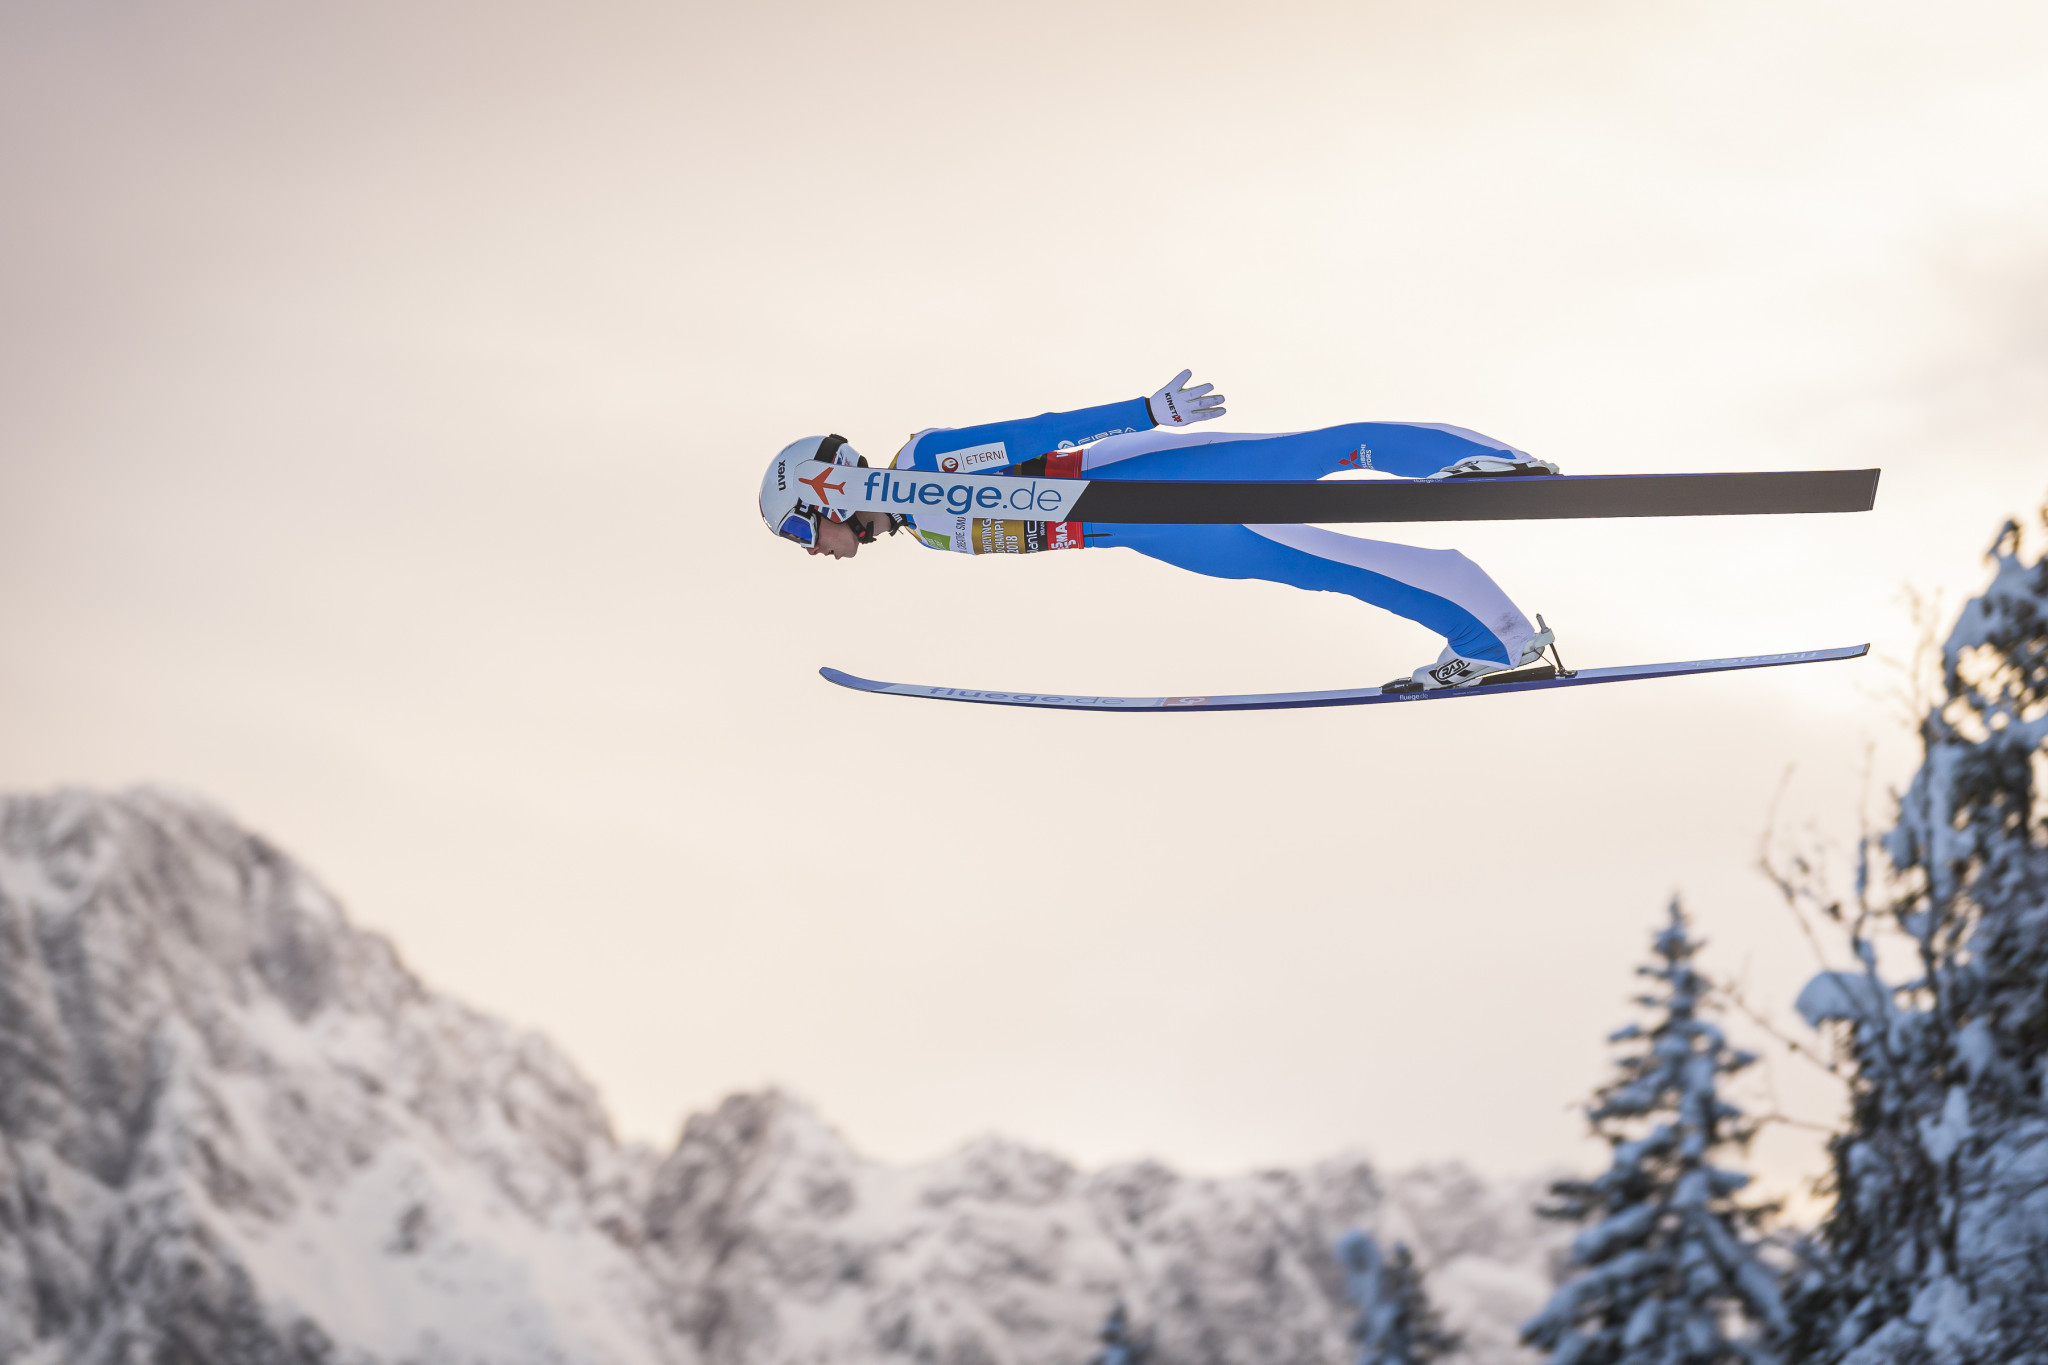 Norway edge Germany to win team title at FIS Ski Flying World Championships